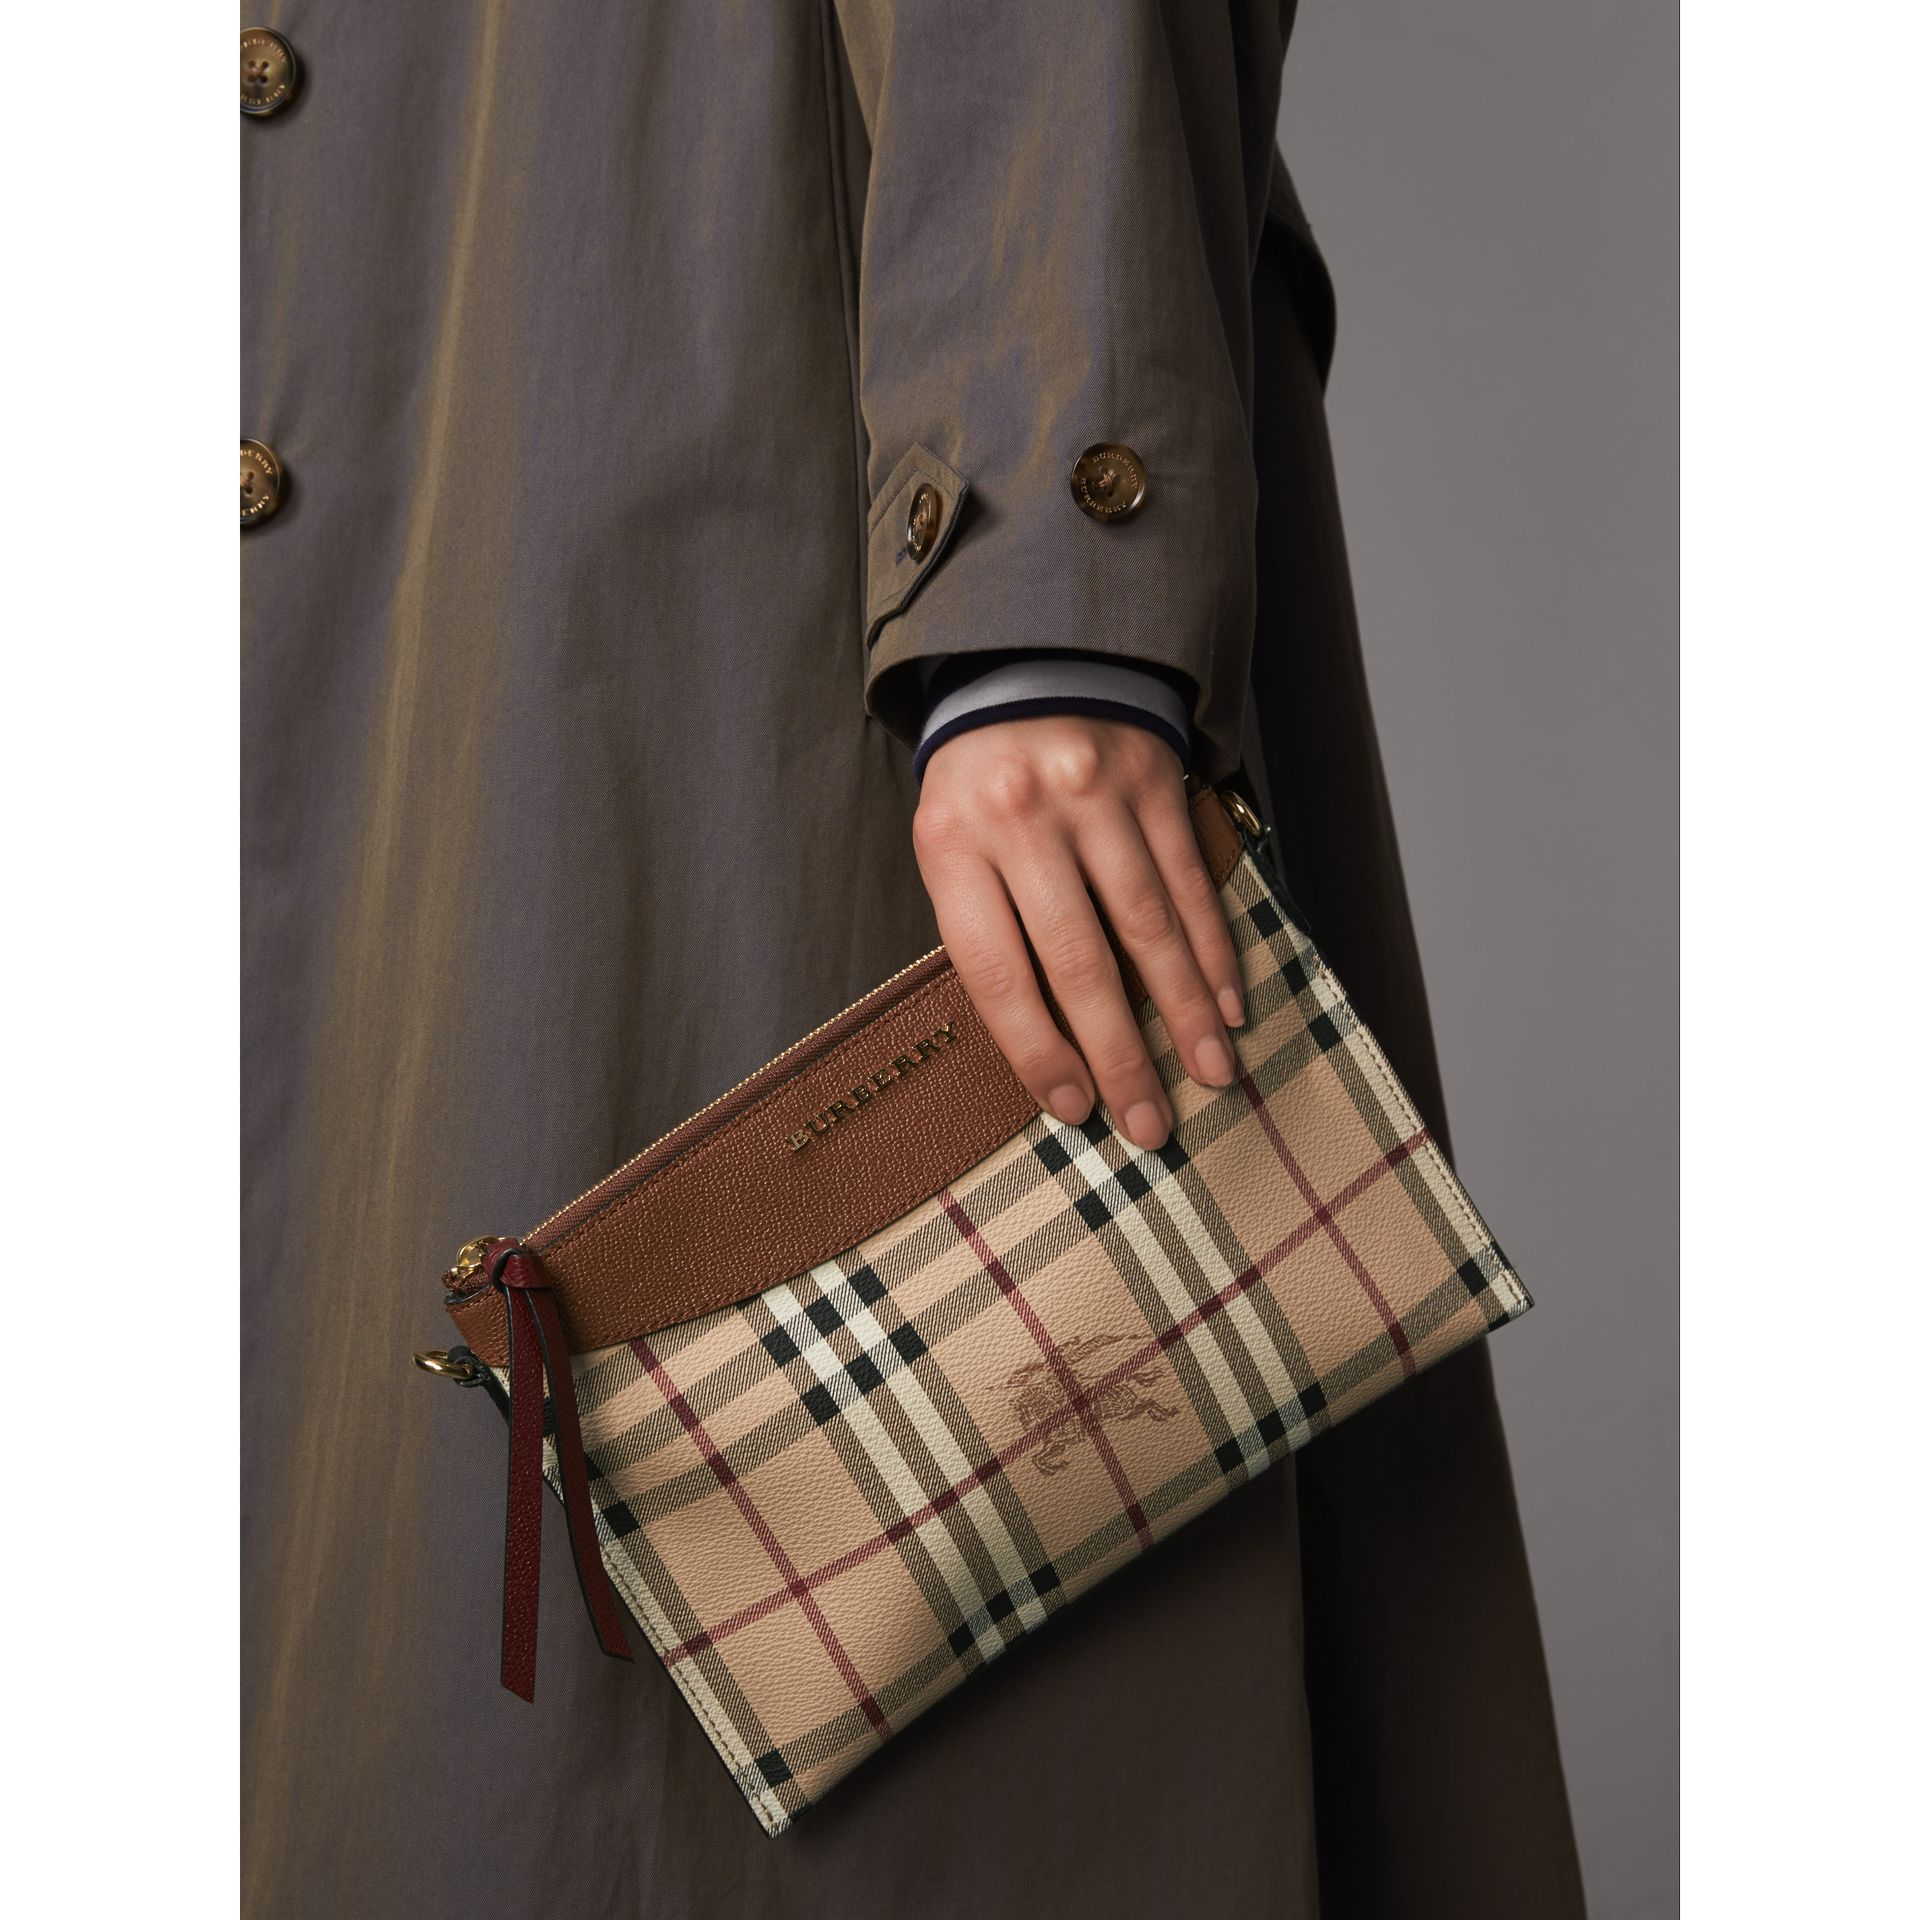 Haymarket Check and Two-tone Leather Clutch Bag in Bright Toffee/ Multicolour - Women | Burberry Singapore - gallery image 4